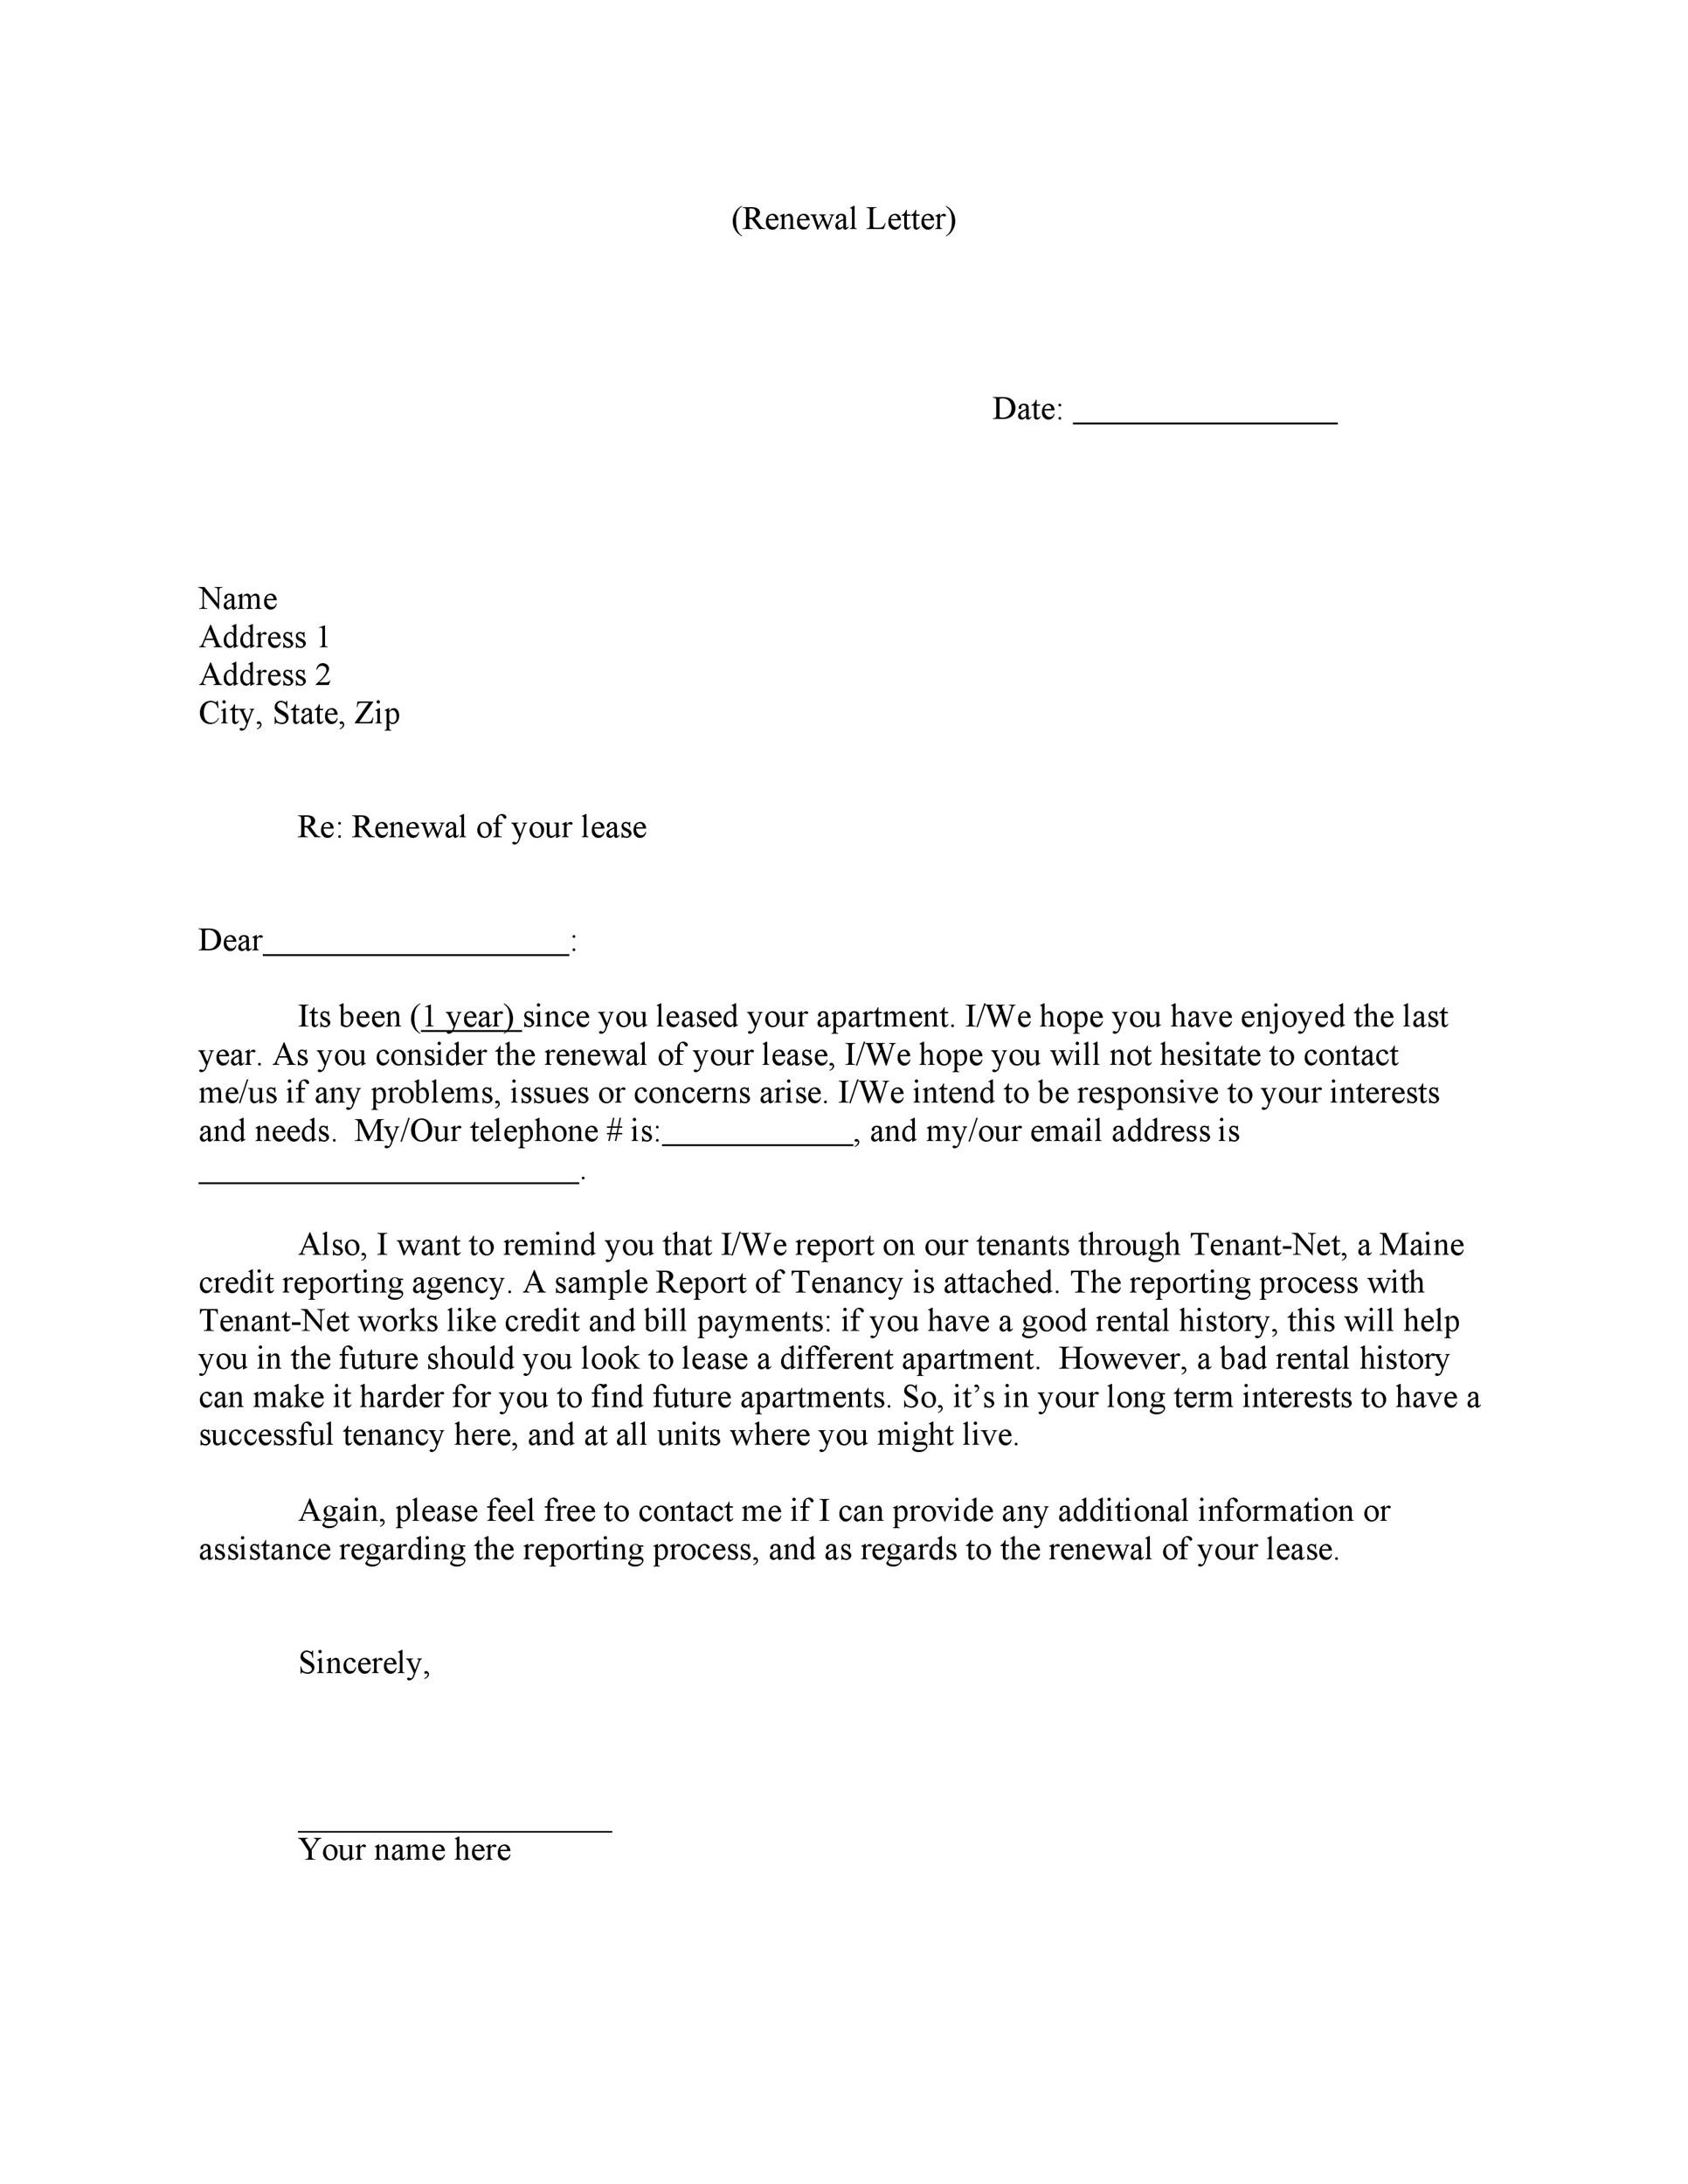 Free lease renewal letter 10